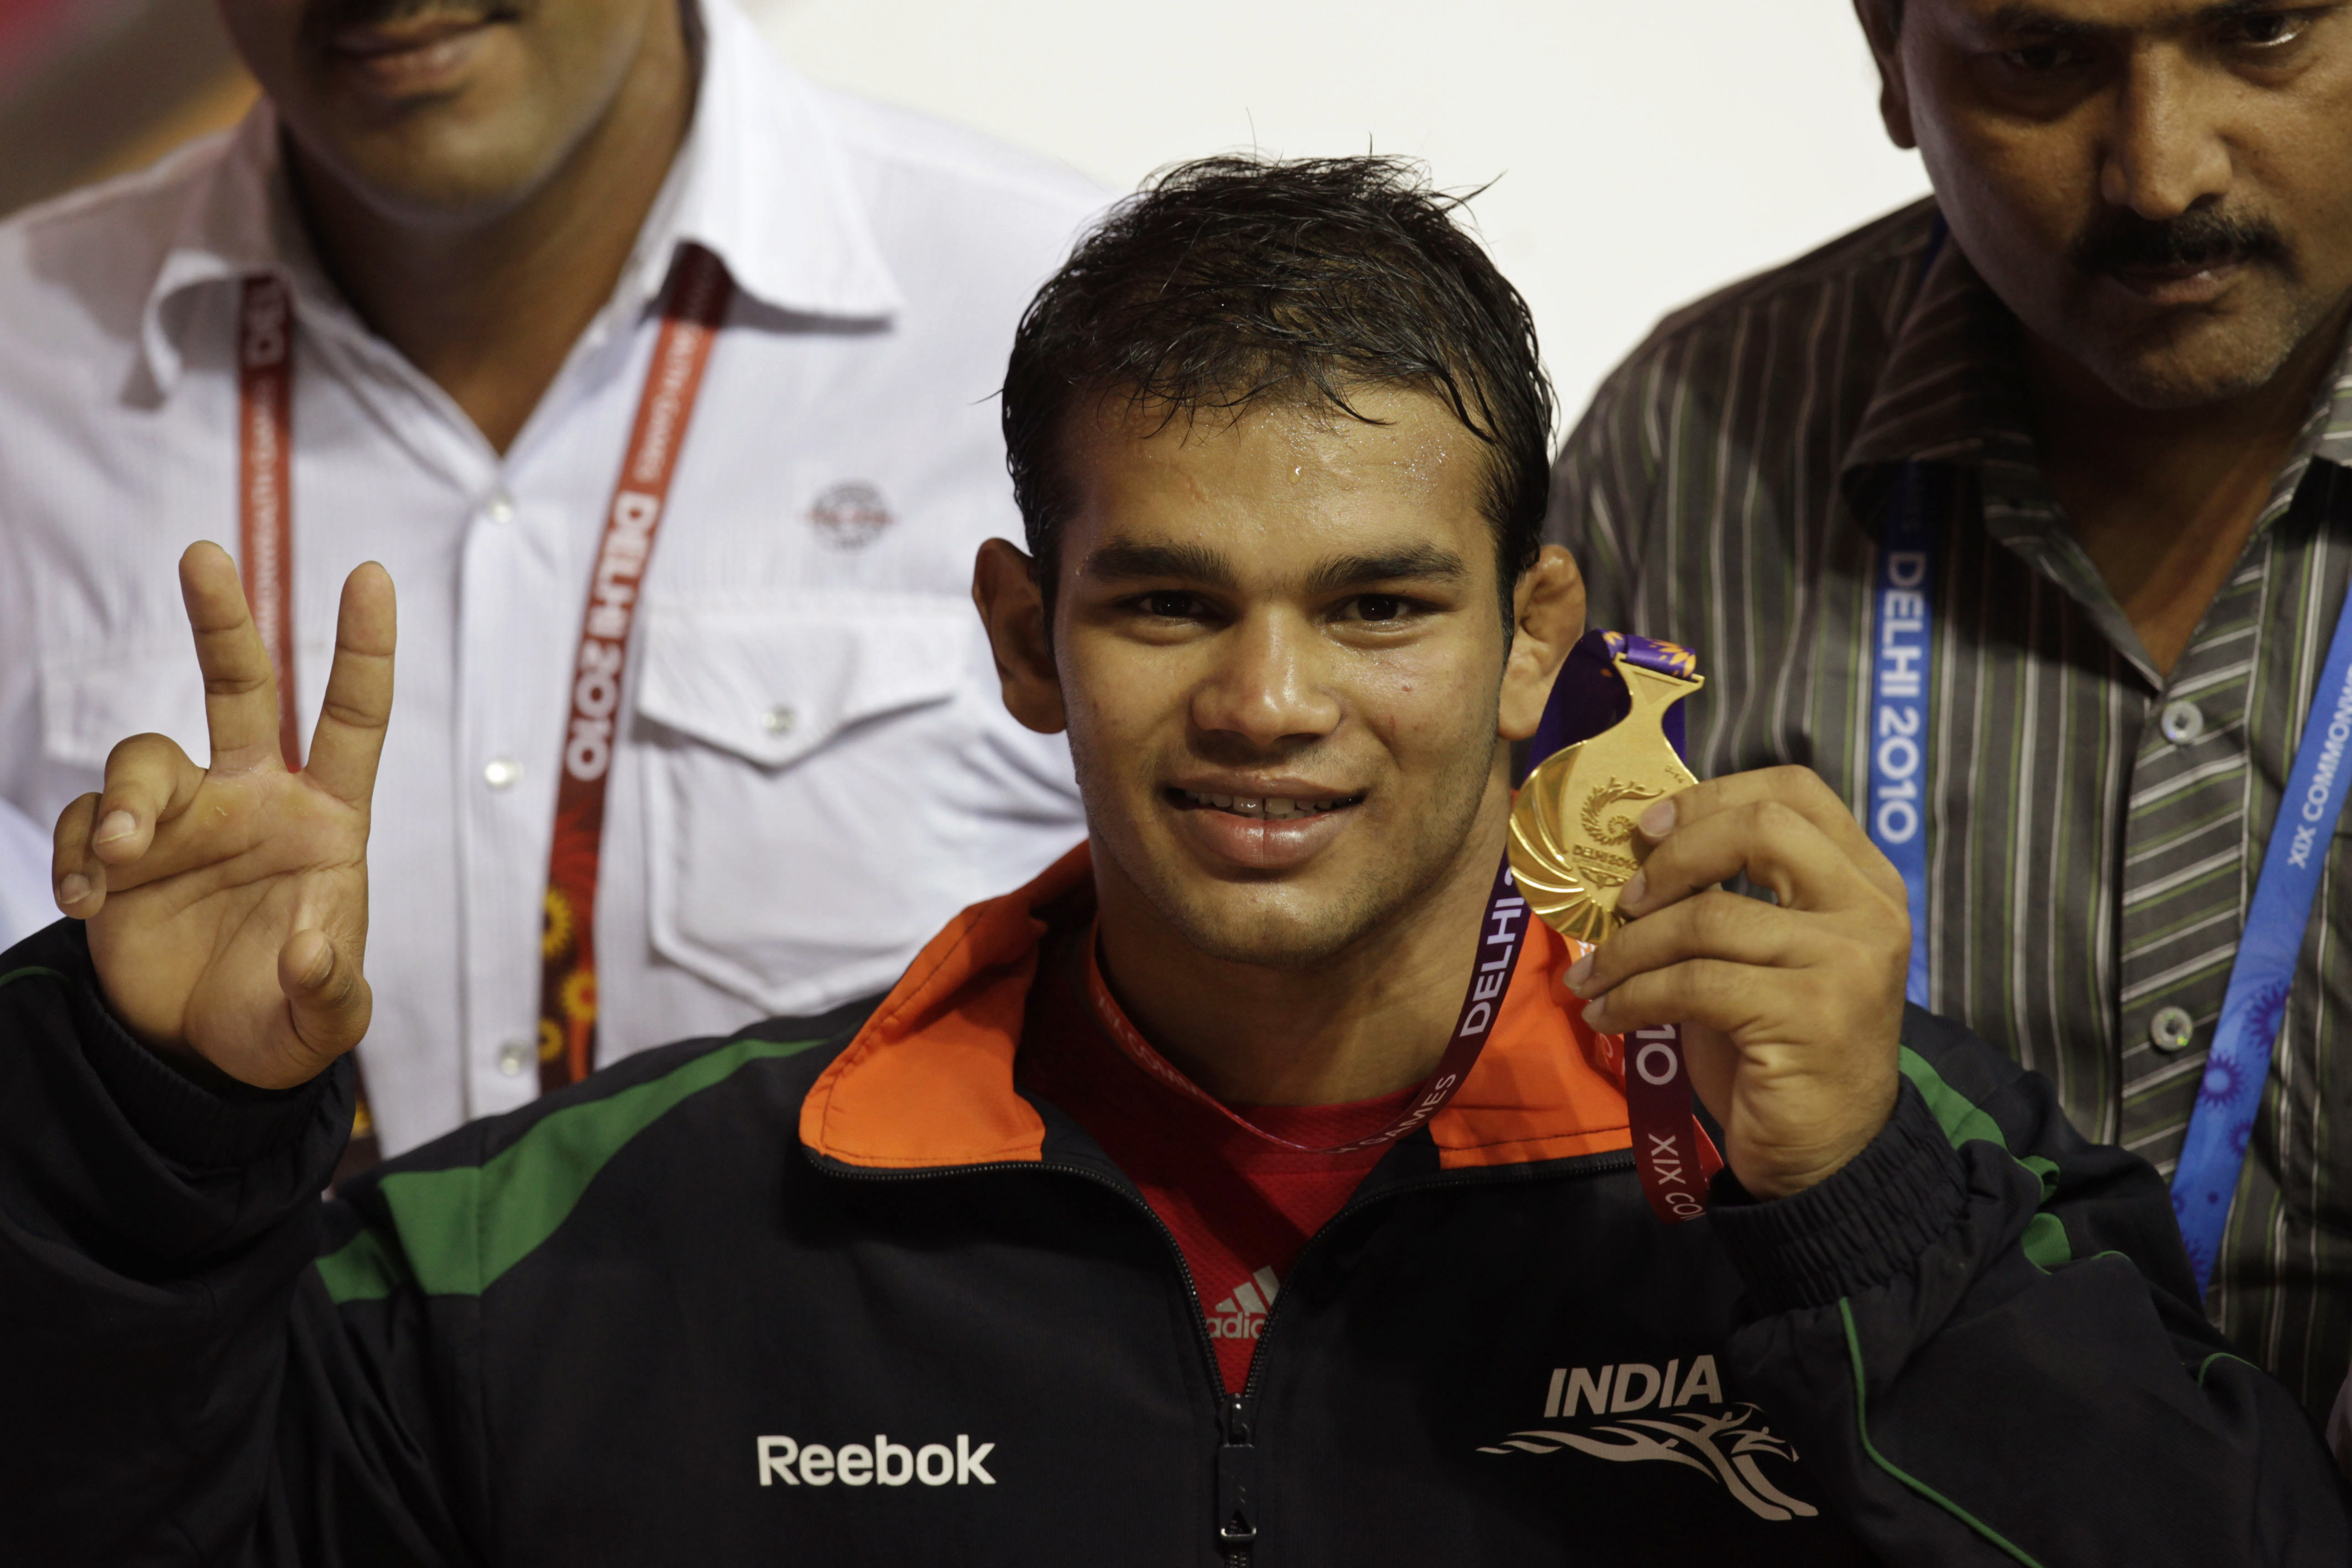 FILE- In this Oct. 9, 2010, file photo, Indian wrestler Narsingh Yadav displays his medal after winning against South Africa Richard Brian Addinall in the 74kg category wrestling at the Commonwealth Games in New Delhi, India. Yadav, who was to represent I